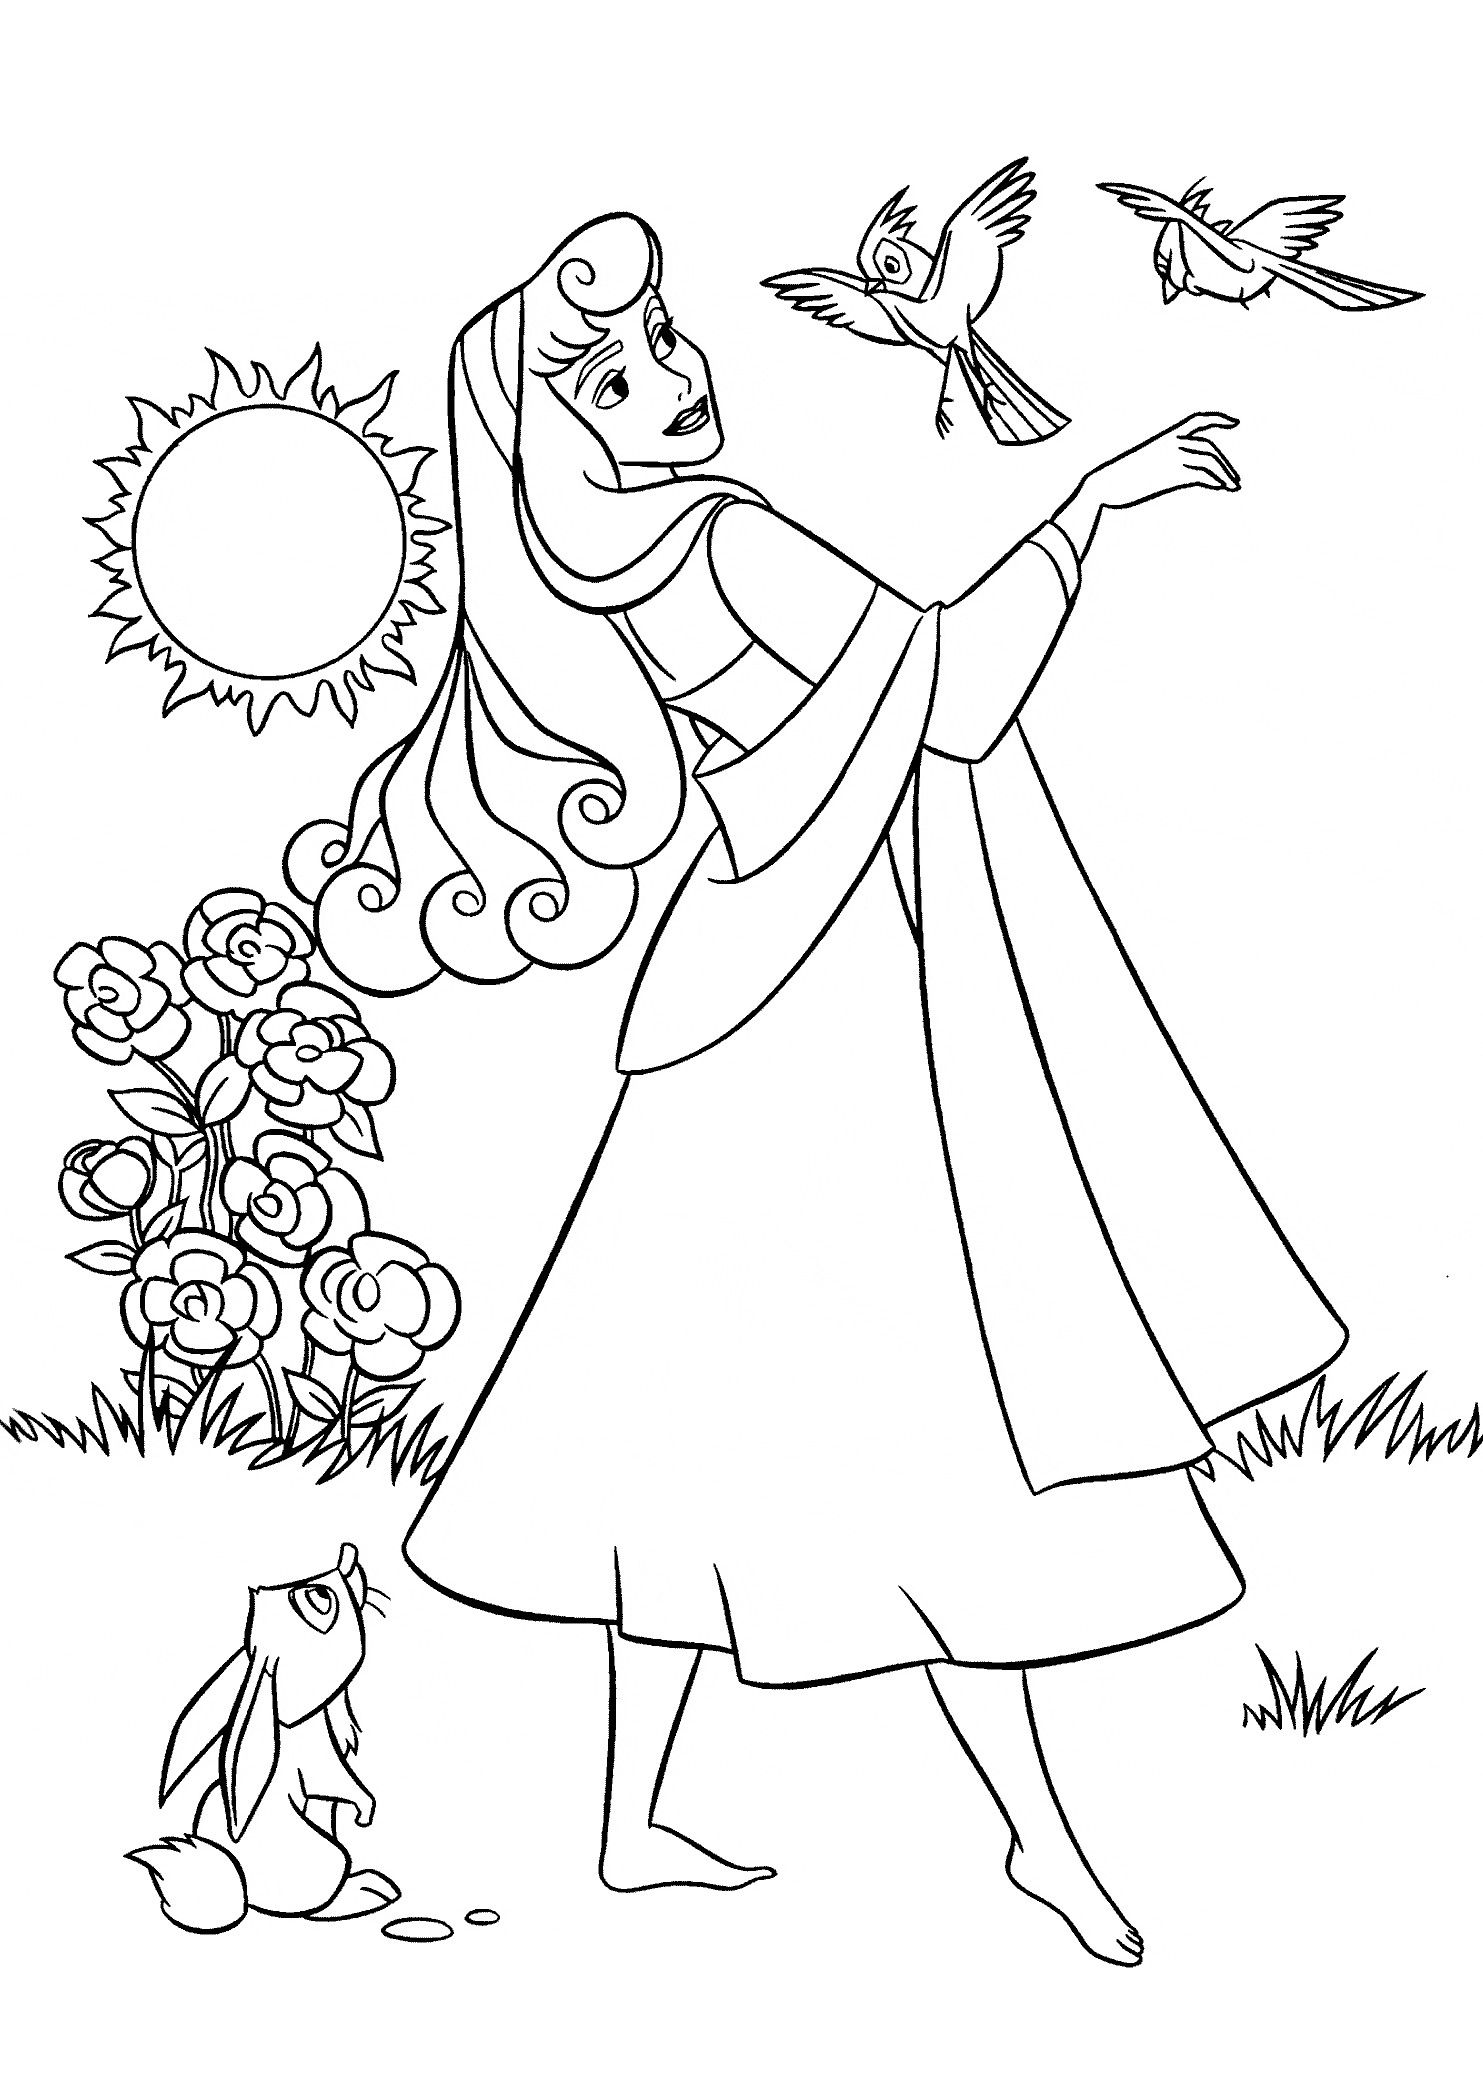 Disney Princess Coloring Pages Sleeping Beauty Disney Princess